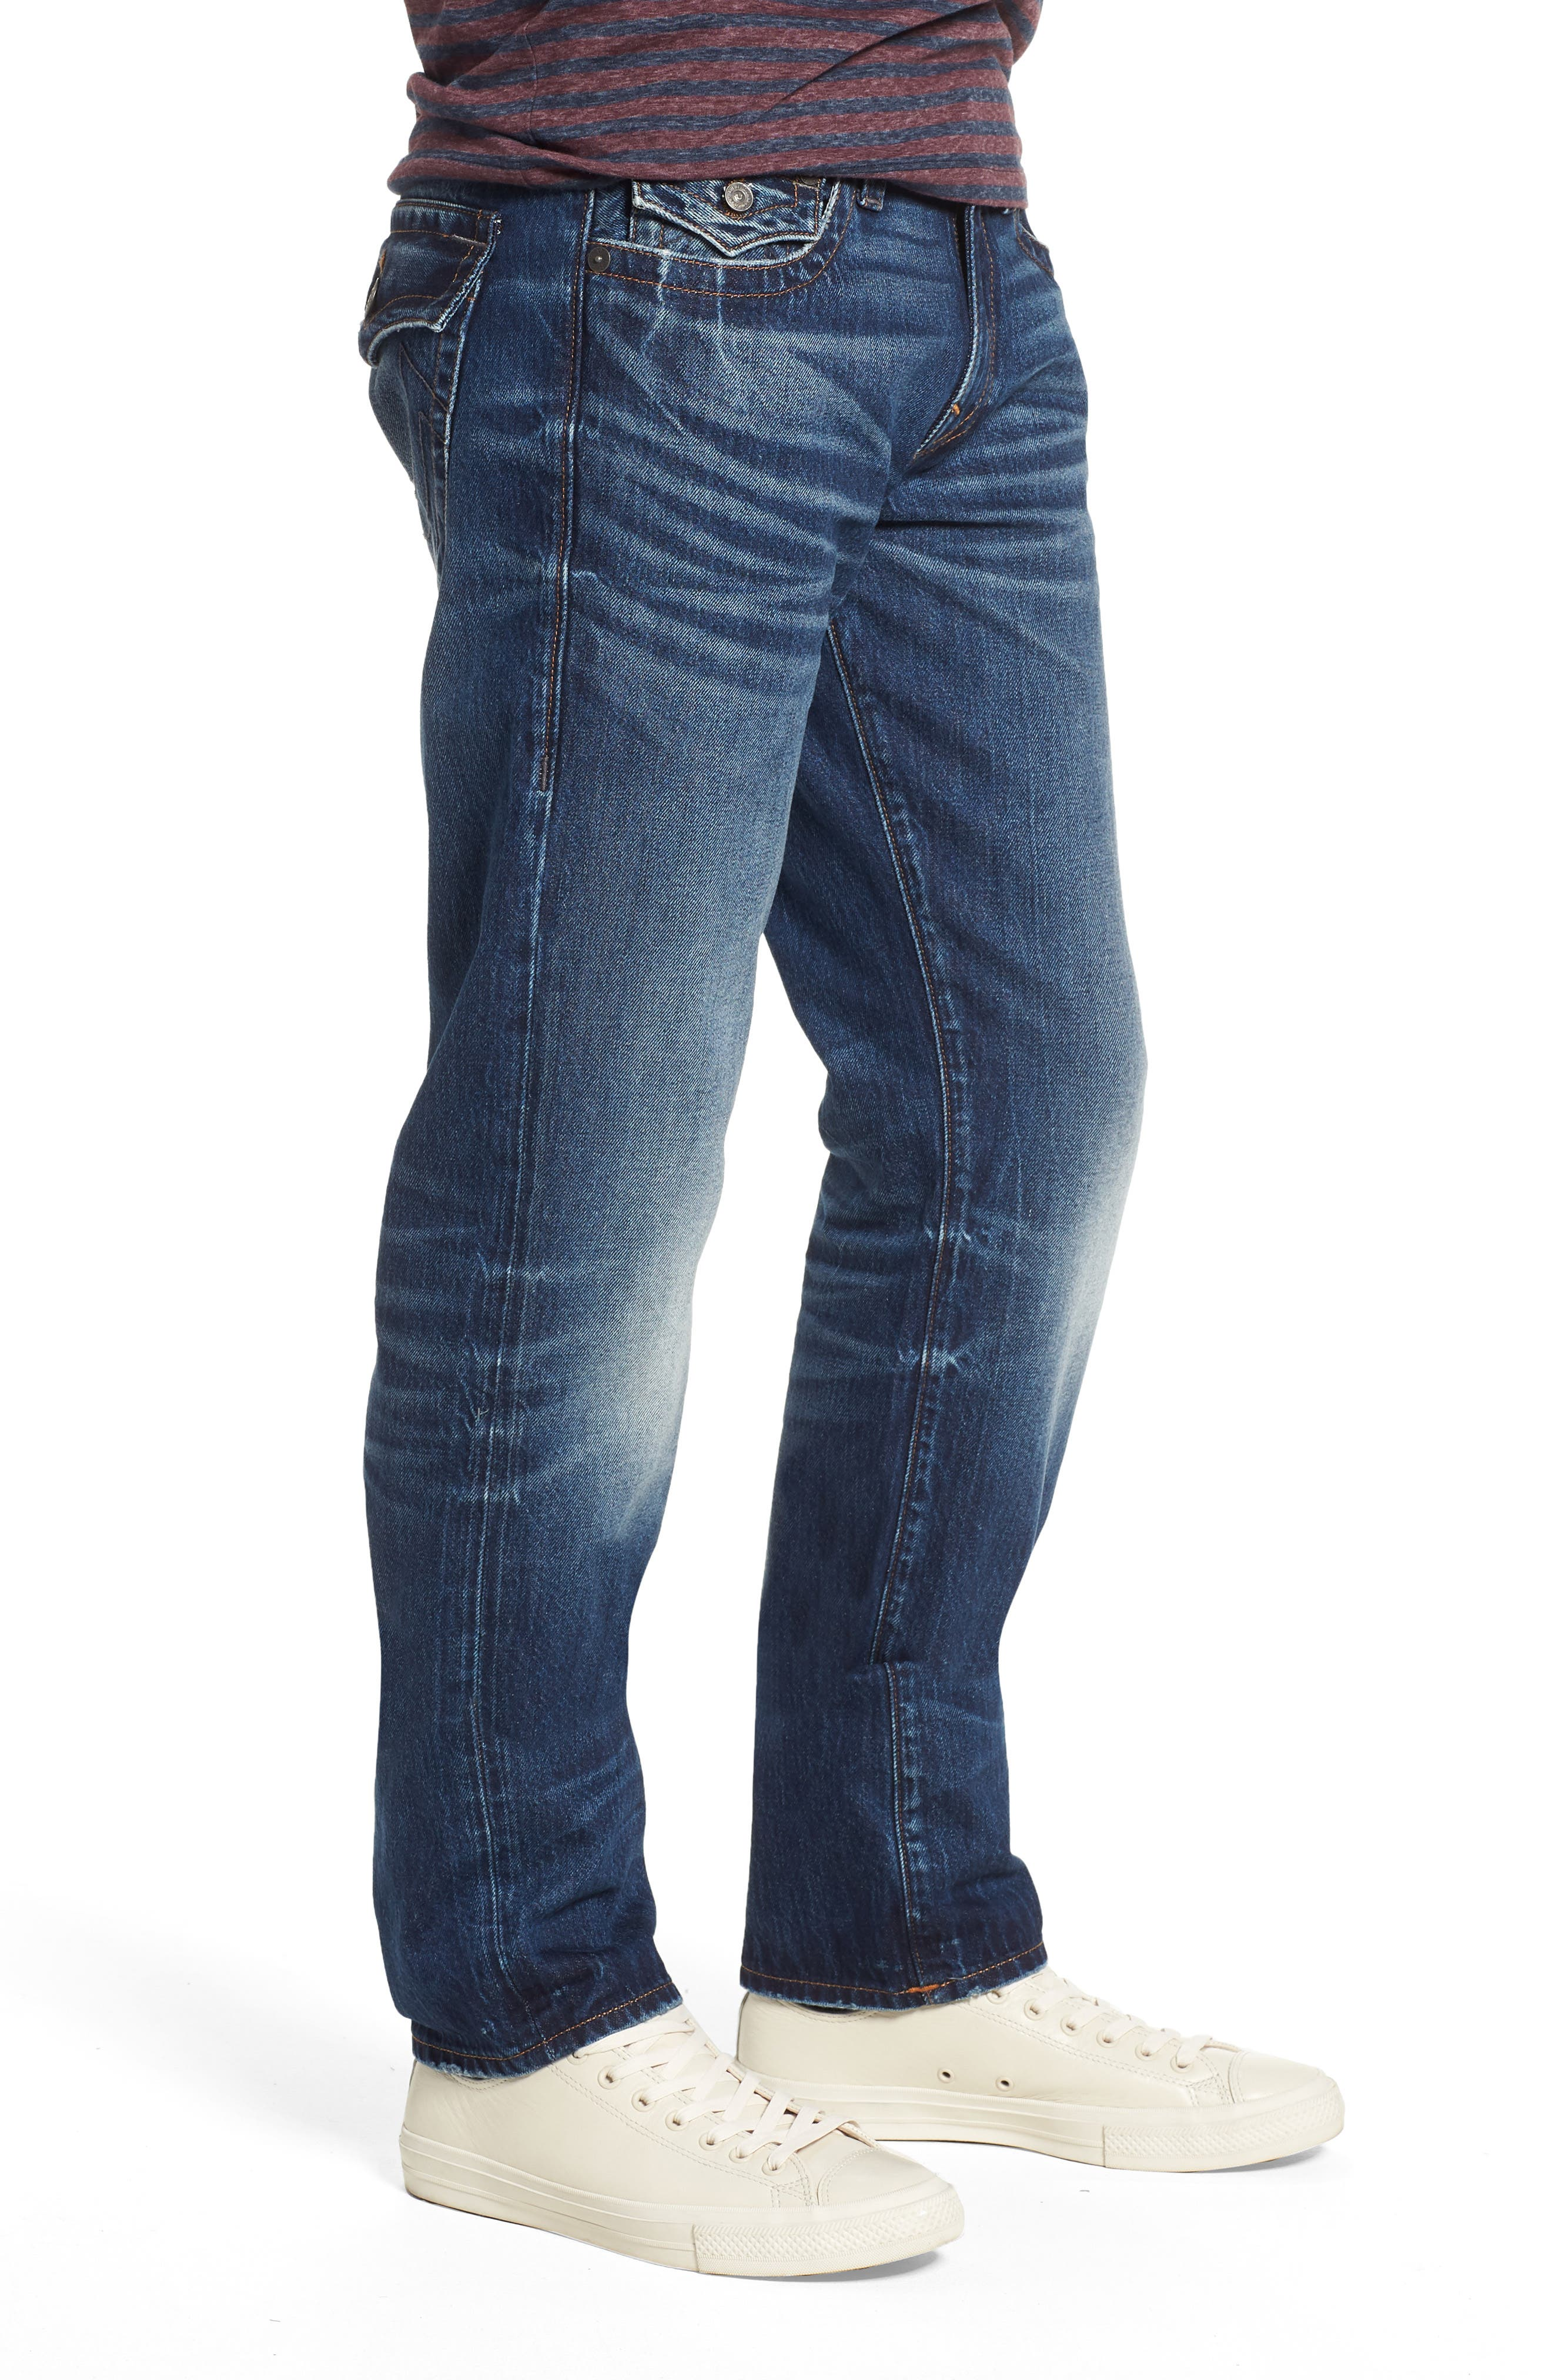 Geno Straight Leg Jeans,                             Alternate thumbnail 3, color,                             EQSD DARK AFTER HOURS